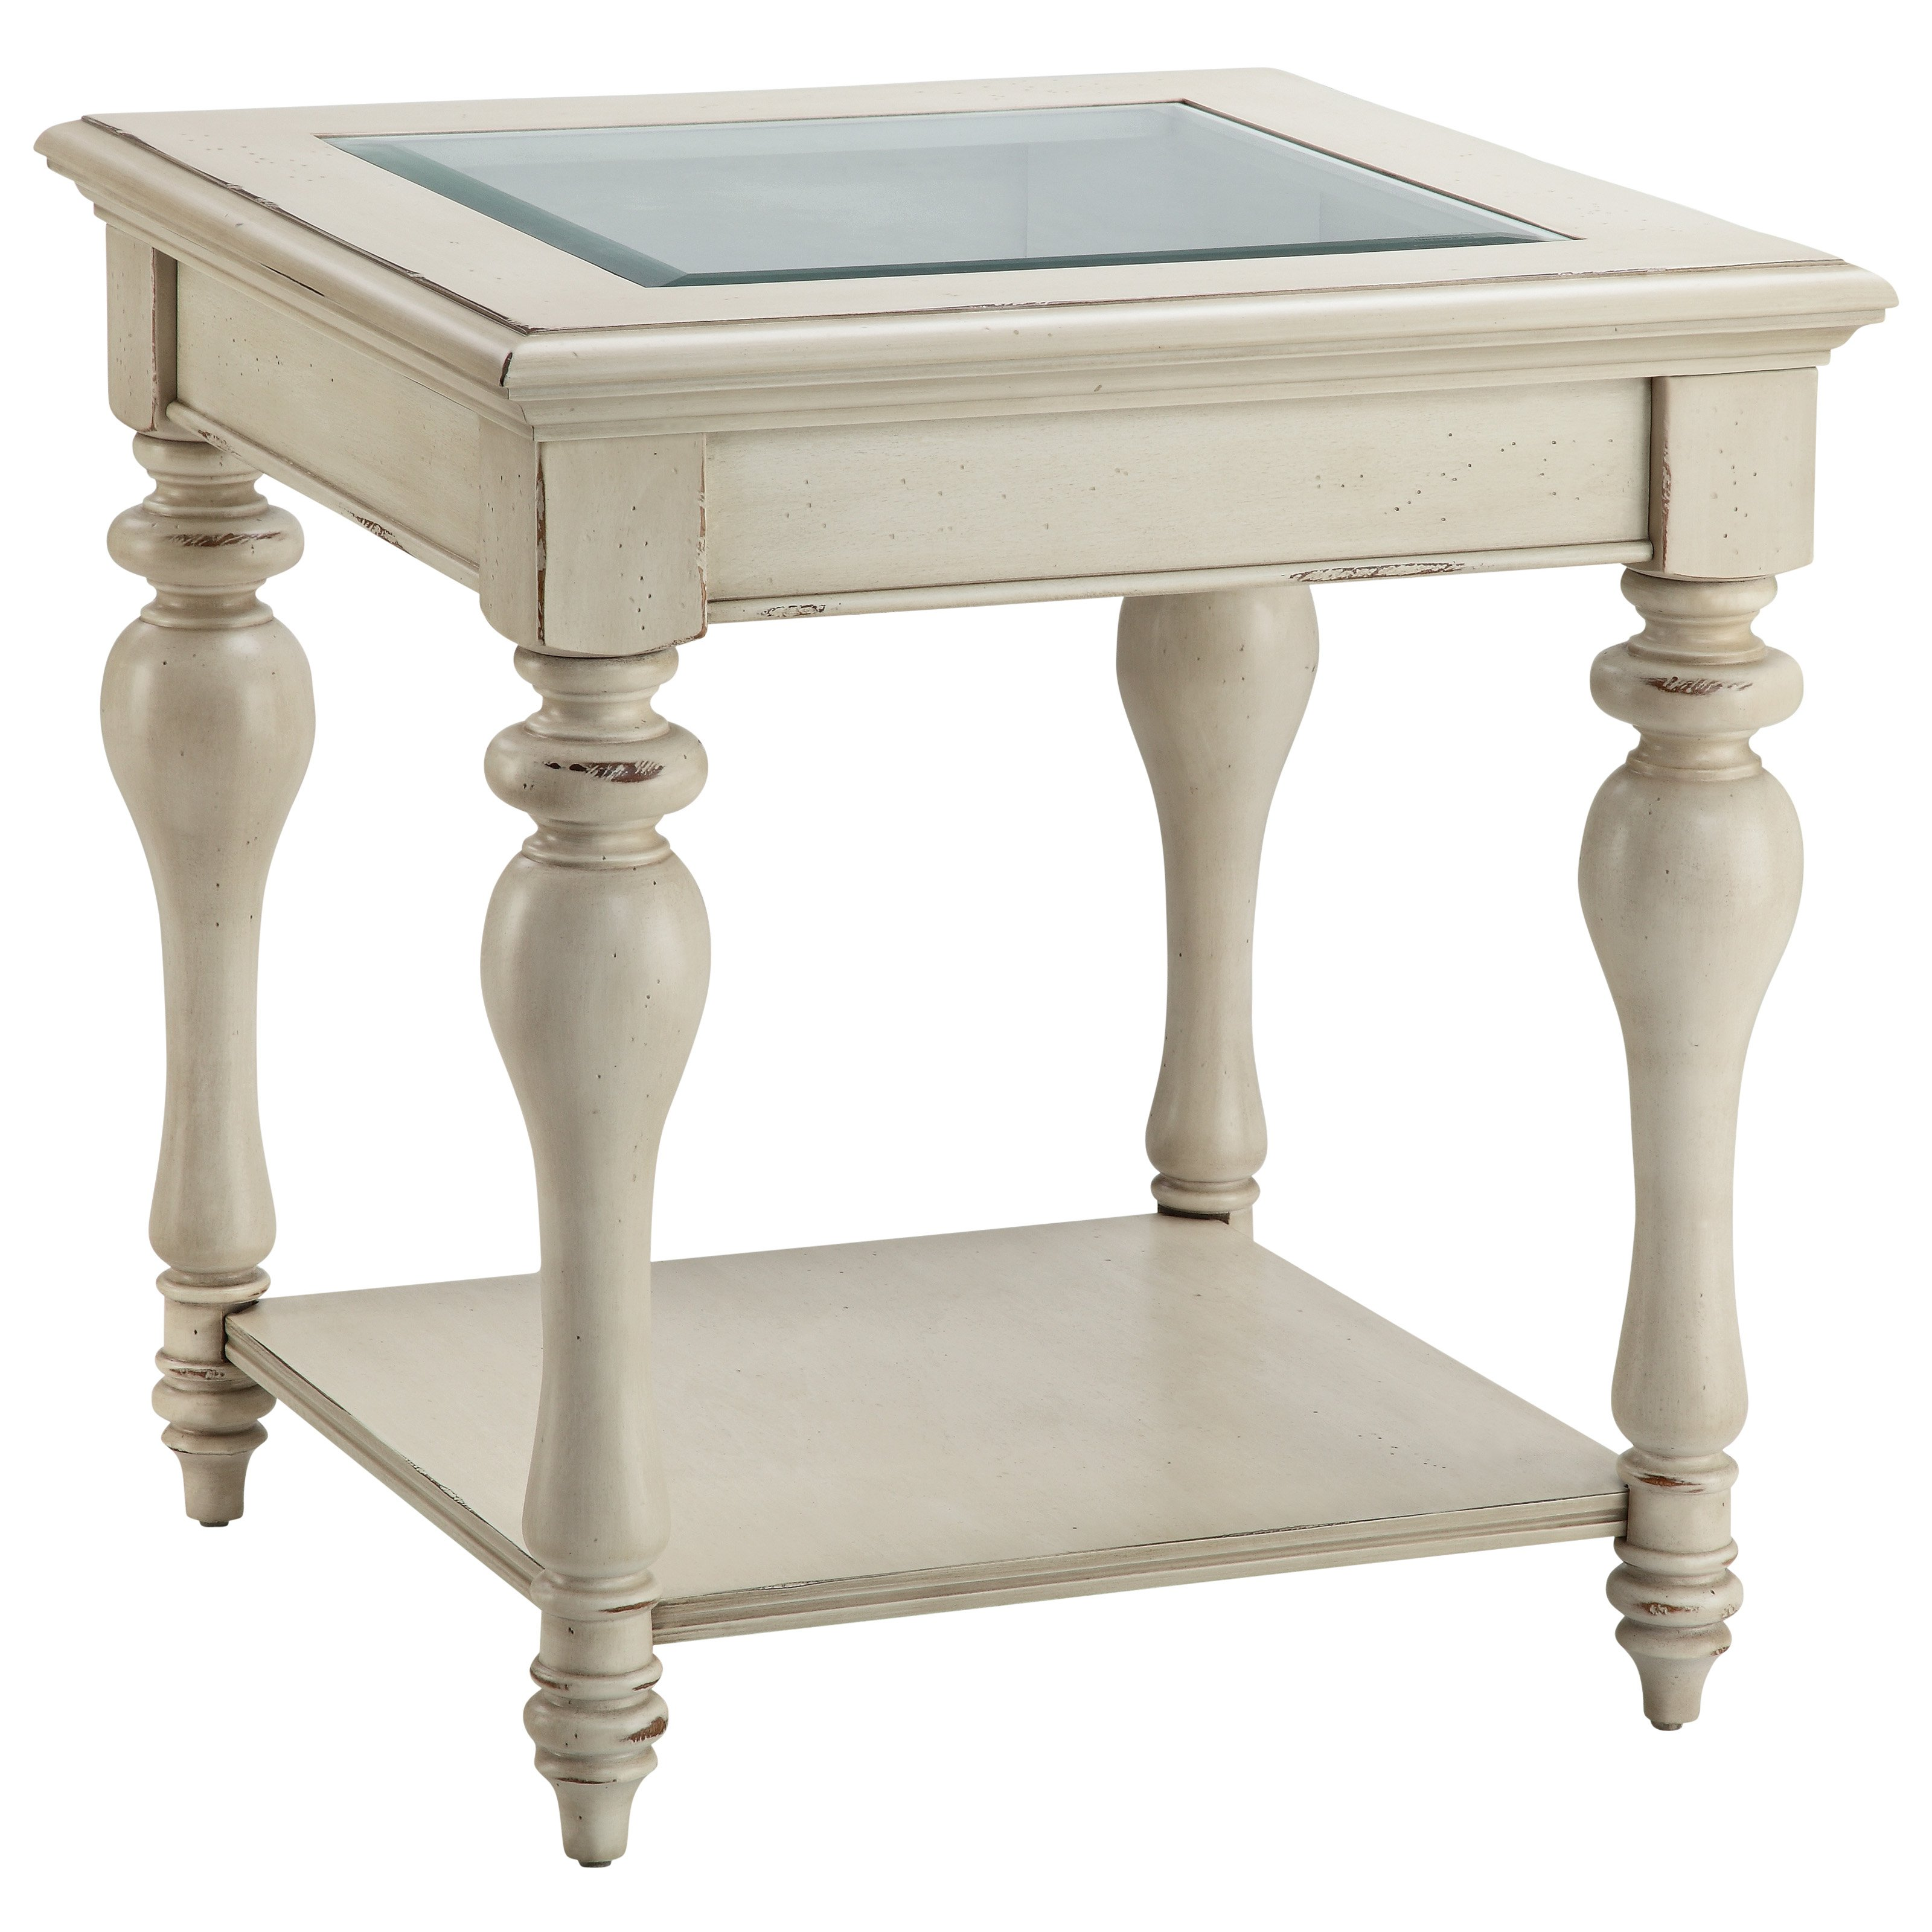 furniture rectangle shabby white end table made from wood complete square with glass top and shelf adorable lovely look for you drawer round pull out royal sofa set dining room